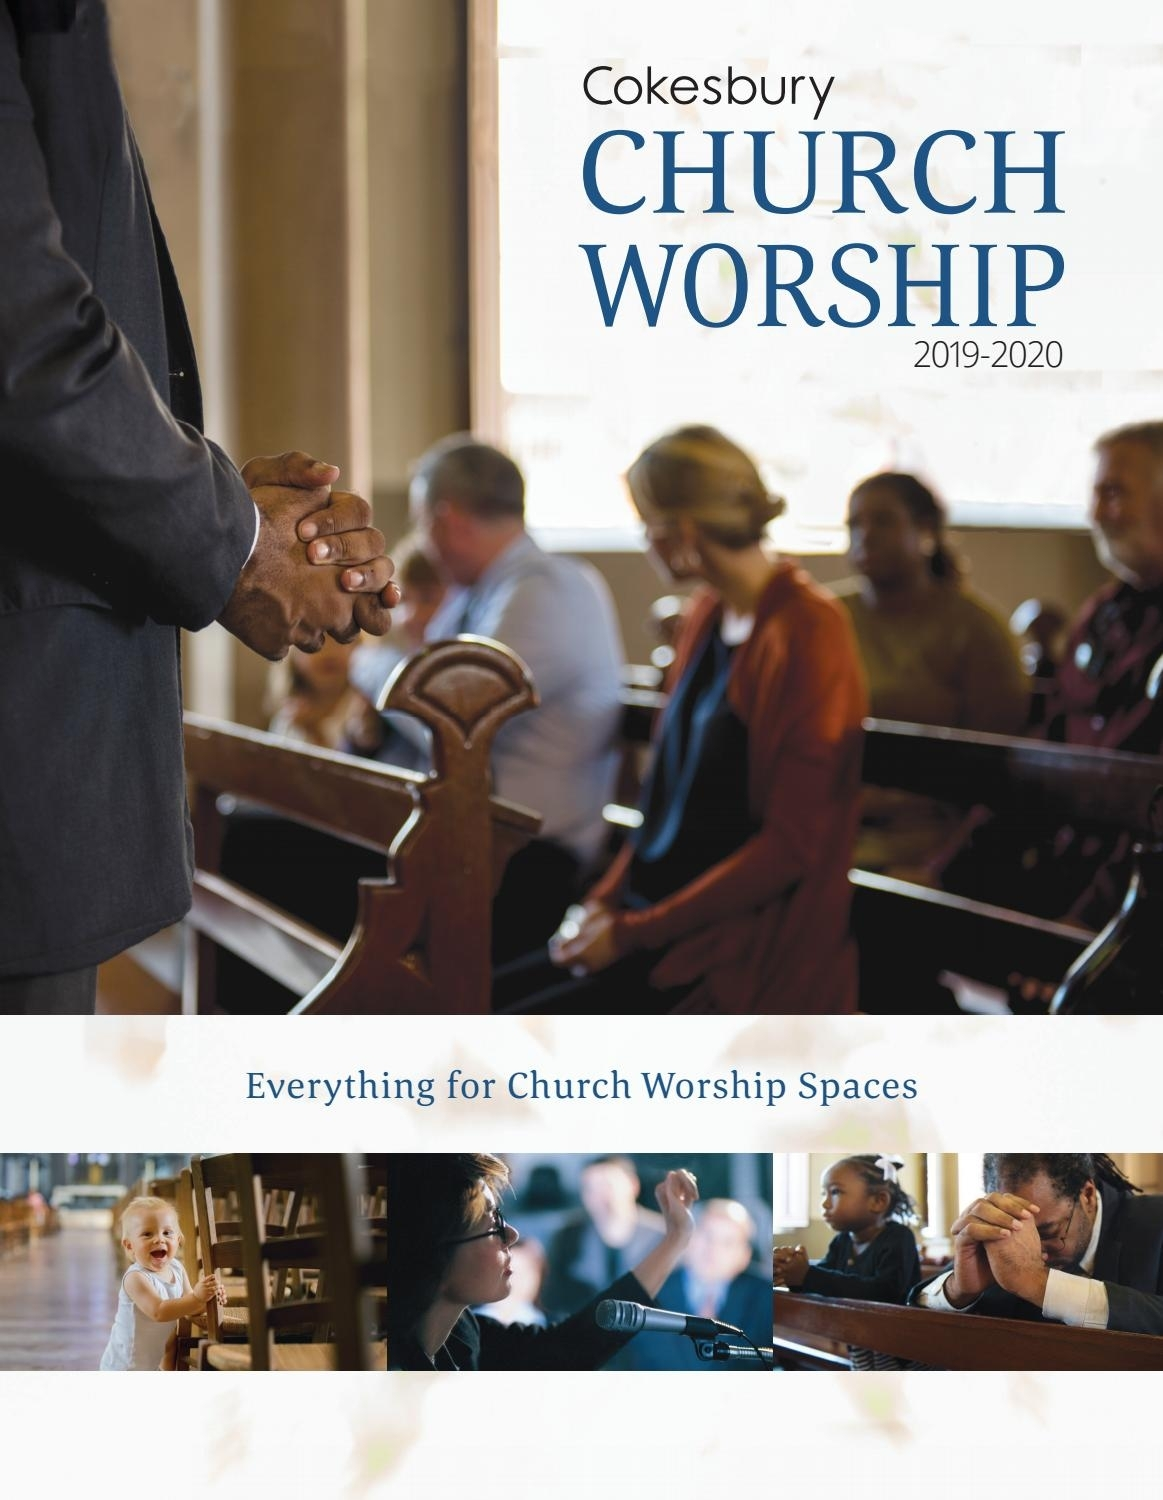 Cokesbury Church Worhip 2019-2020 By United Methodist